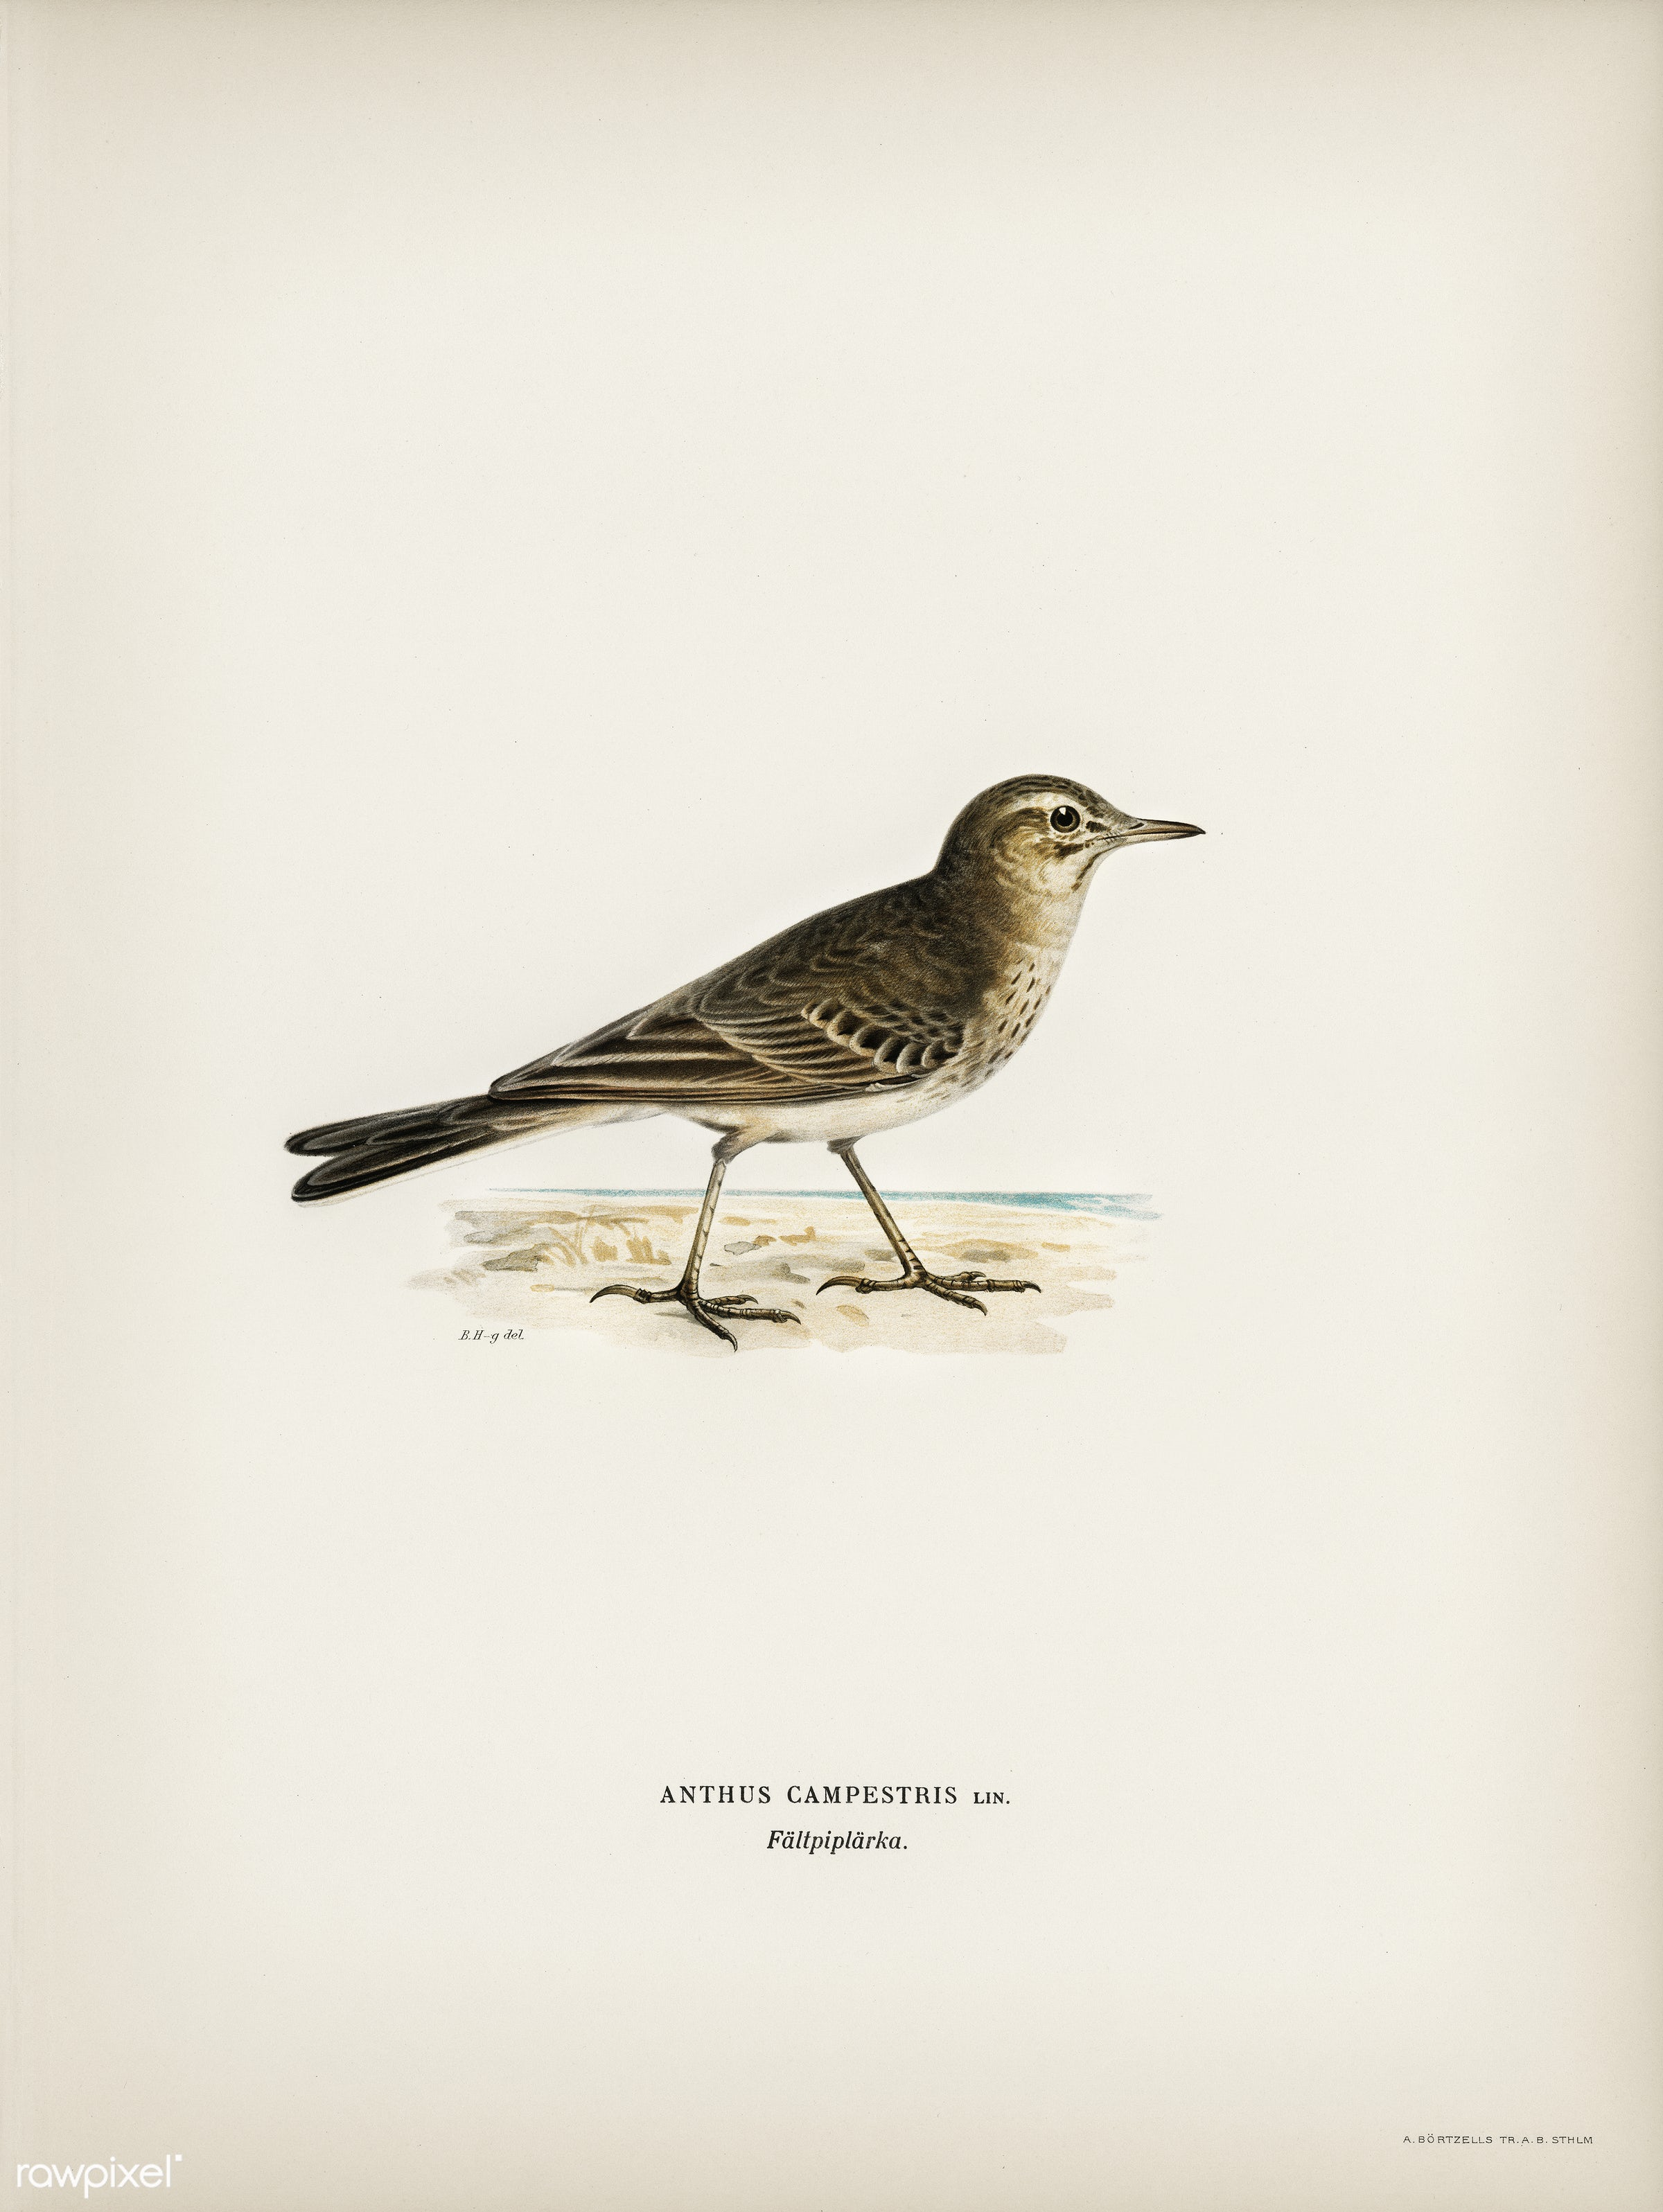 Tawny pipit (Anthus campestris) illustrated by the von Wright brothers. Digitally enhanced from our own 1929 folio version...